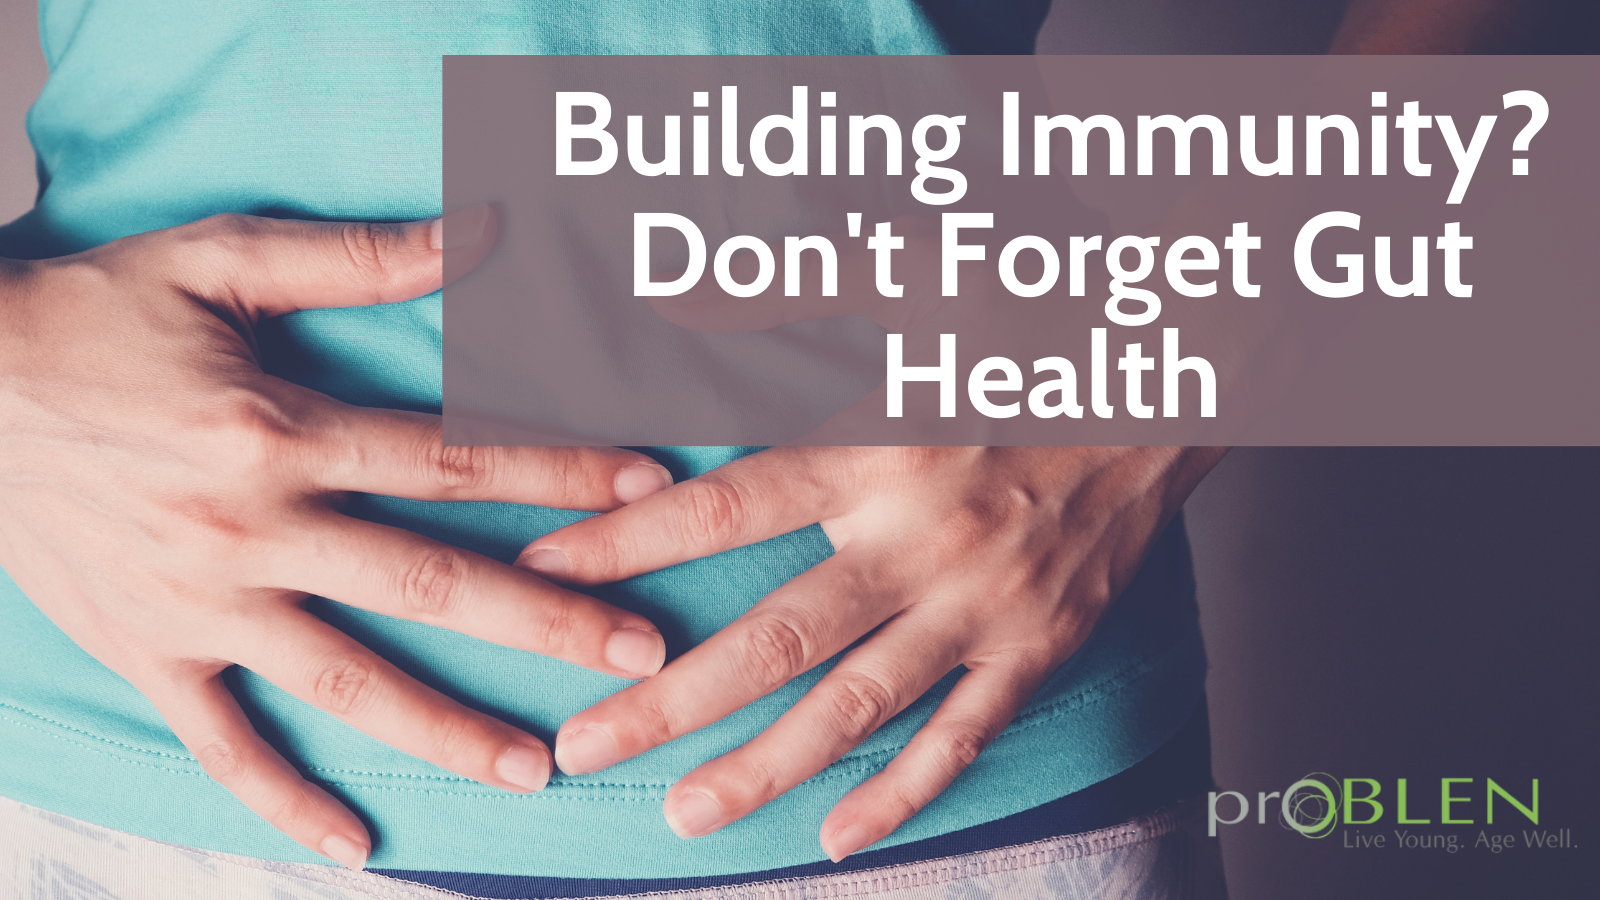 Building Immunity? Don't Forget Gut Health